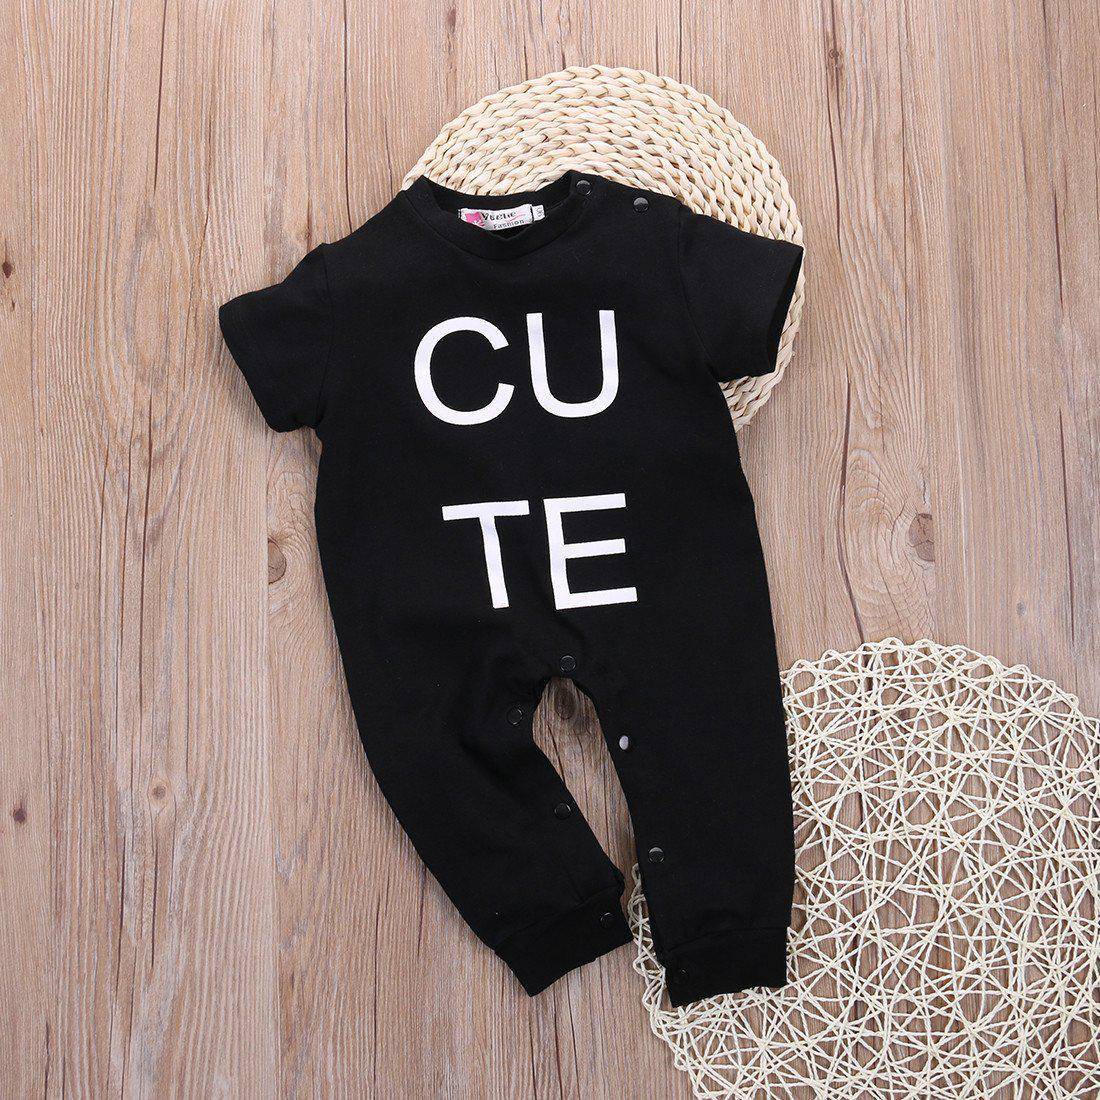 New Newborn Infant Baby Boys Girls One-Piece Warm Romper Jumpsuit Outfits Clothes Children's Clothing Sports Suit Tracksuit-ACTIVEWEAR-SheSimplyShops